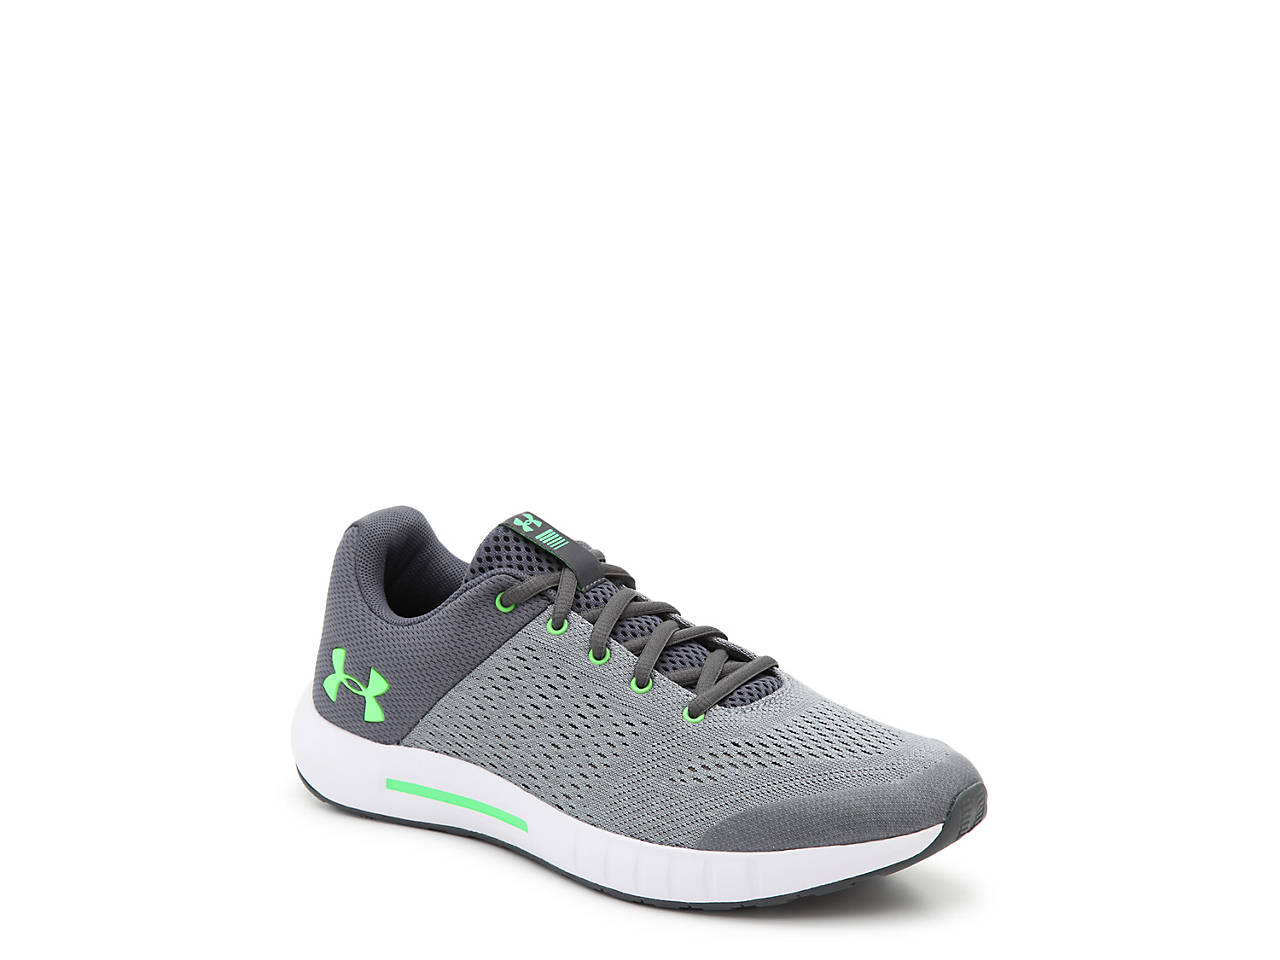 0c378ba1 Under Armour Pursuit Youth Running Shoe Kids Shoes | DSW